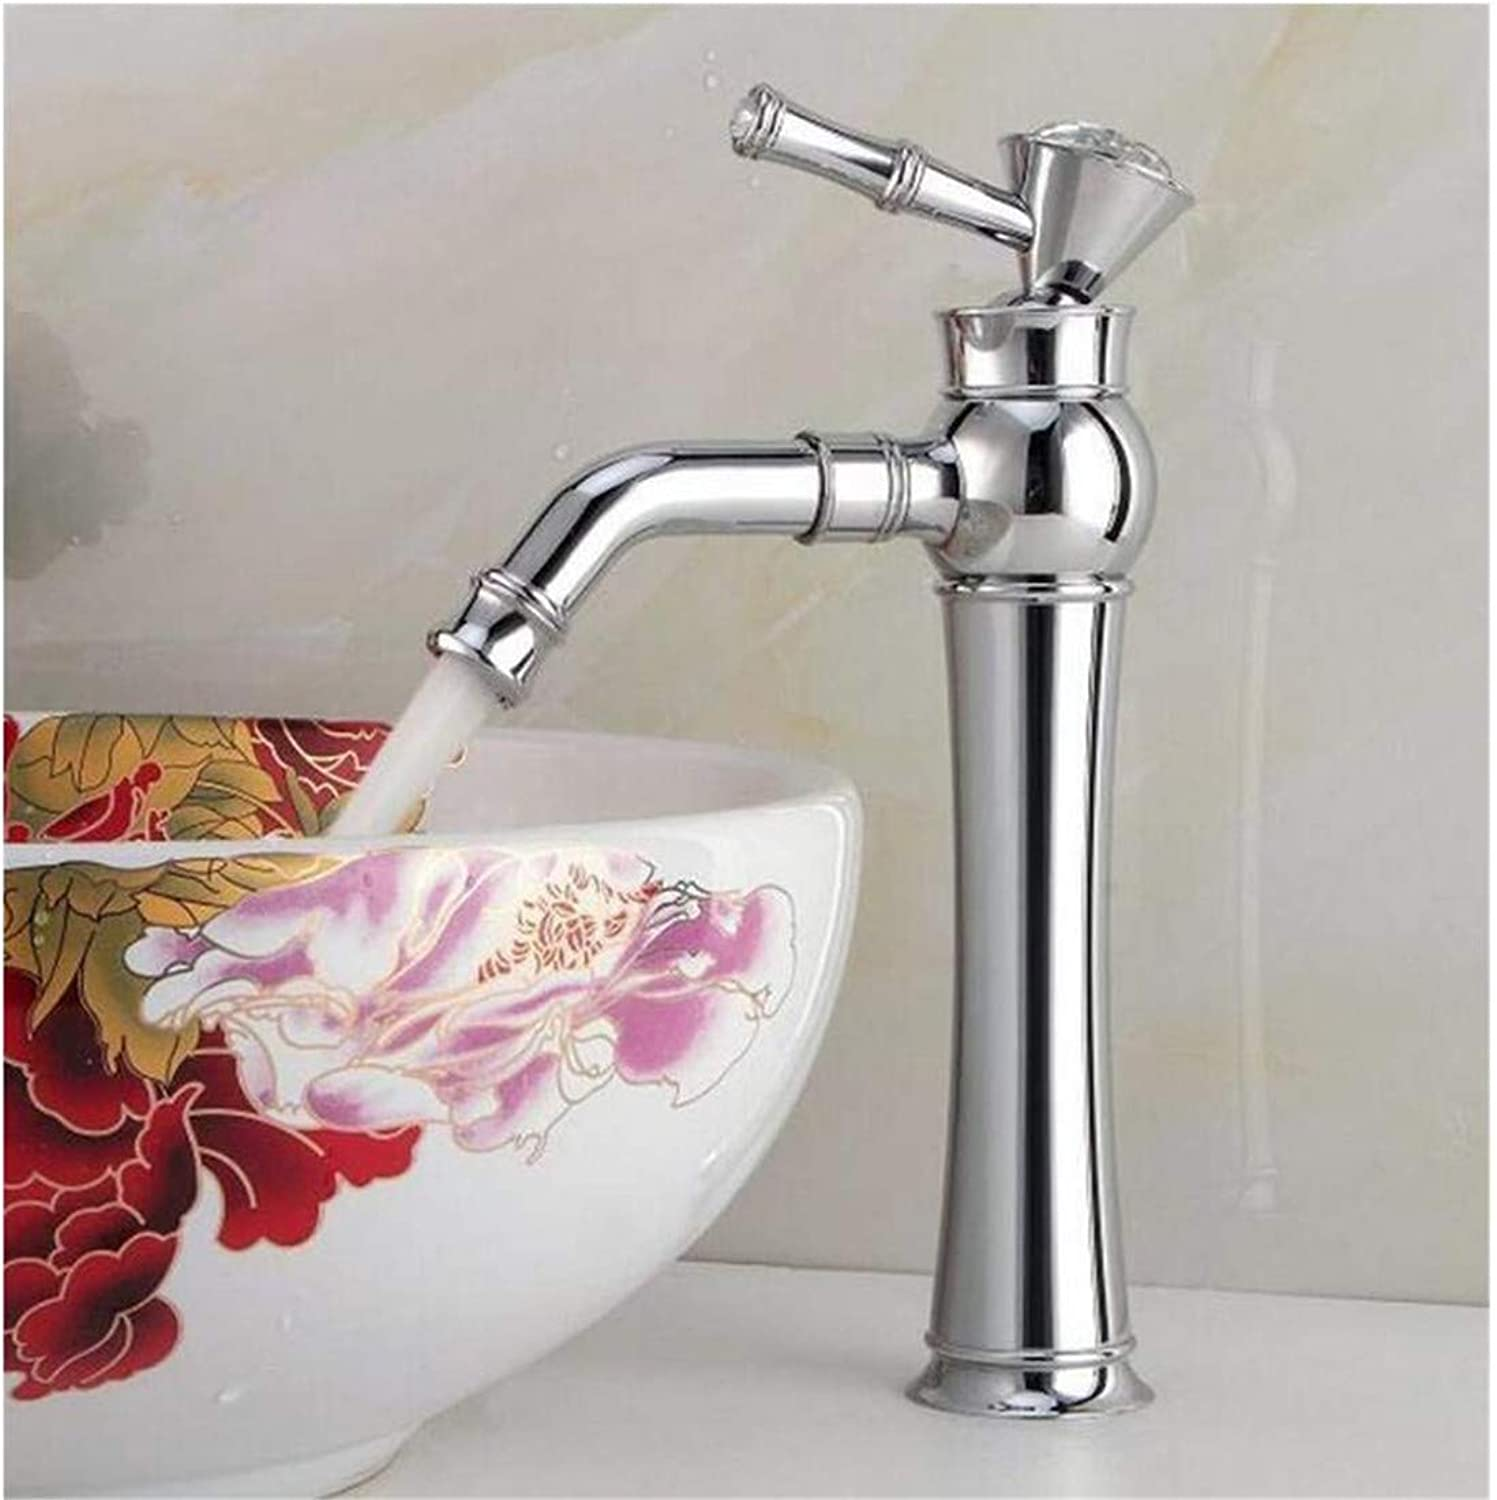 High Quality Vintage Stainless Steel Modern Chrome Plated Single Hole Washbasin Tap Artistic Basin Faucet